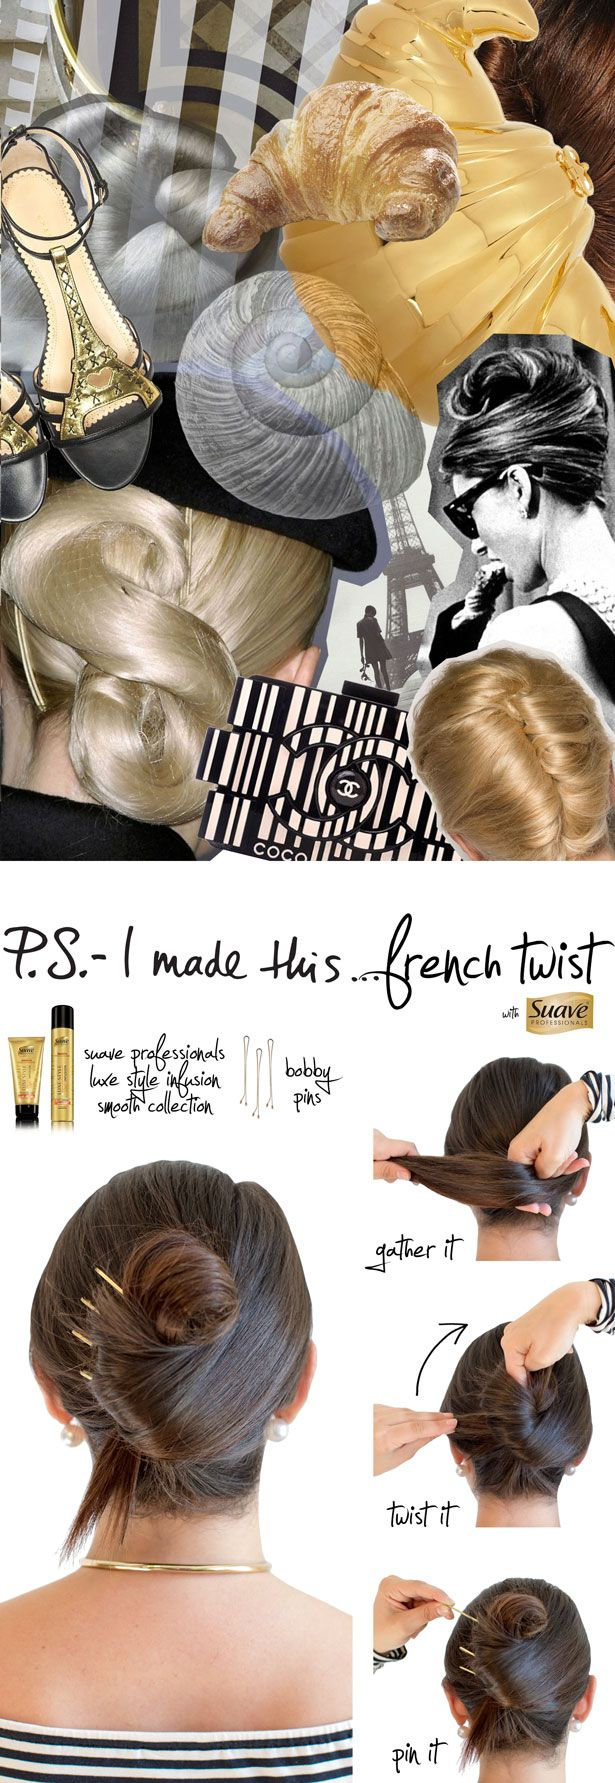 P.S.- I made this… French Twist with @SuaveBeauty featuring Suave Professionals Luxe Style Infusion Smooth Products. #StyleItYourself with these must-haves: Suave Professionals Luxe Style Infusion Smoothing Light Weight Weather Proof Cream, blow dryer, large bobby pins to keep your French Twist in place and Suave Professionals Luxe Style Infusion Anti-Humidity Hairspray to set your style. #StyleItYourself #SIY #DIY #psimadethis #AD